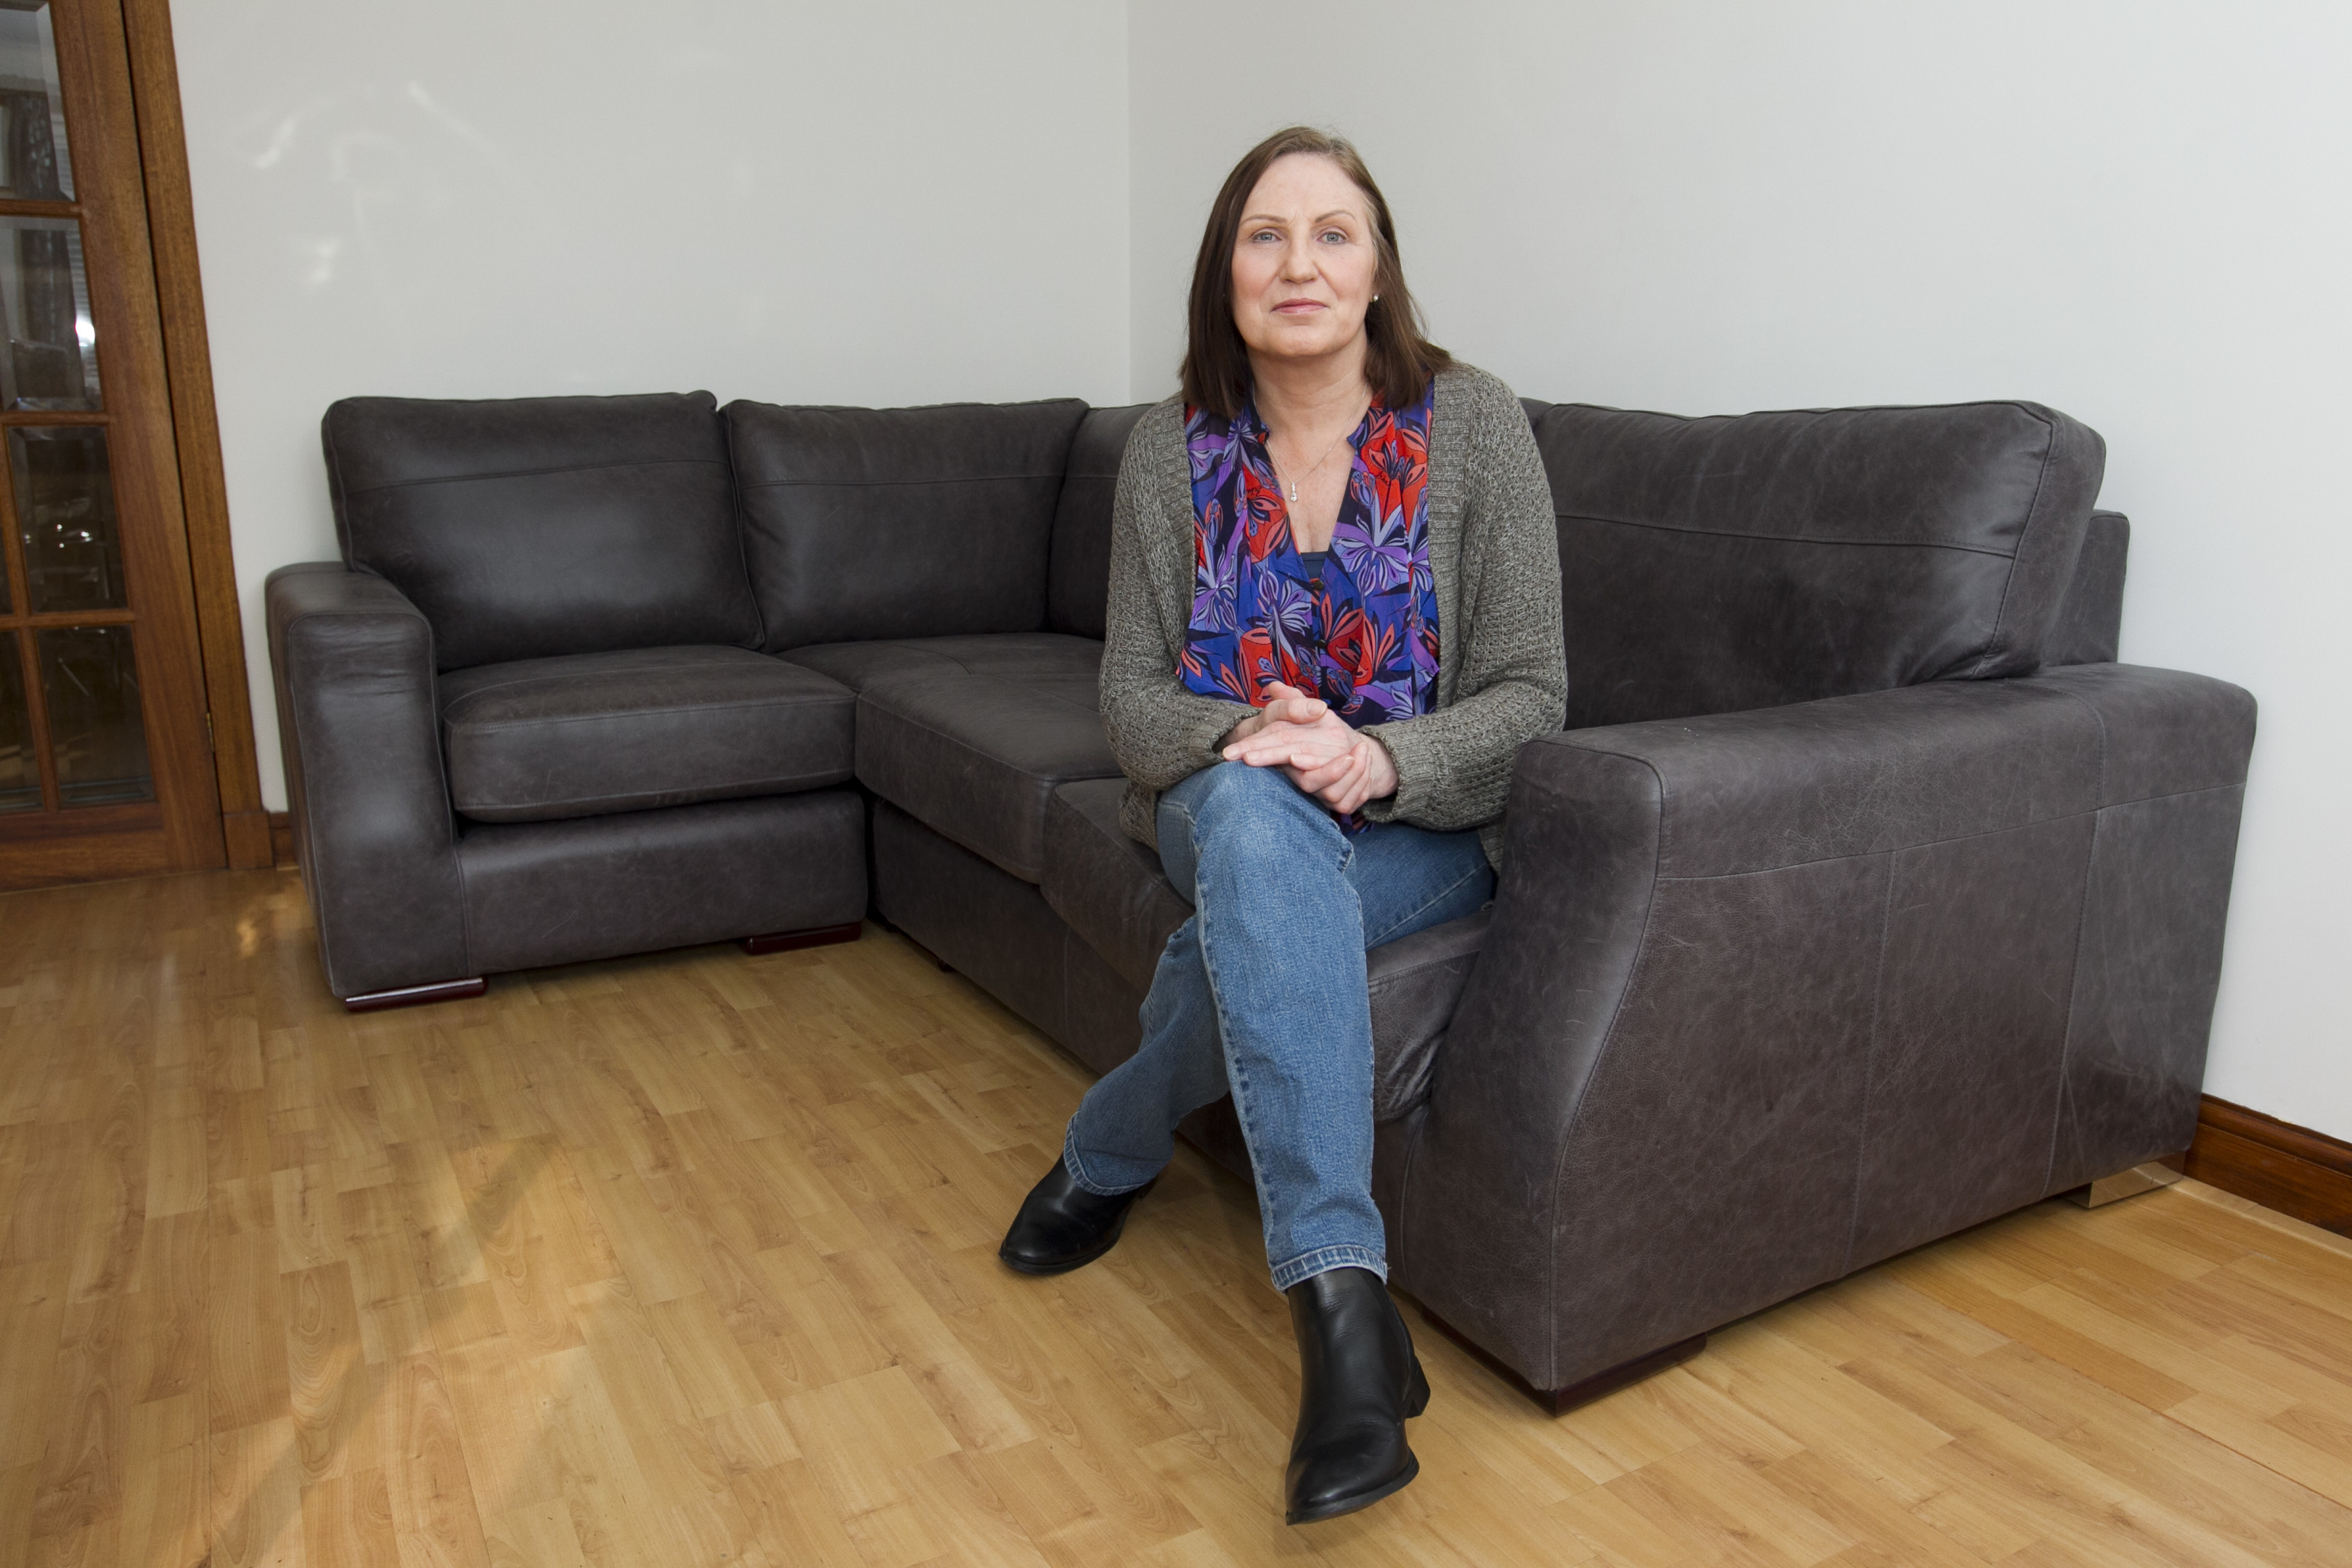 Moira Forbes' dispute has been resolved (Andrew Cawley / DC Thomson)